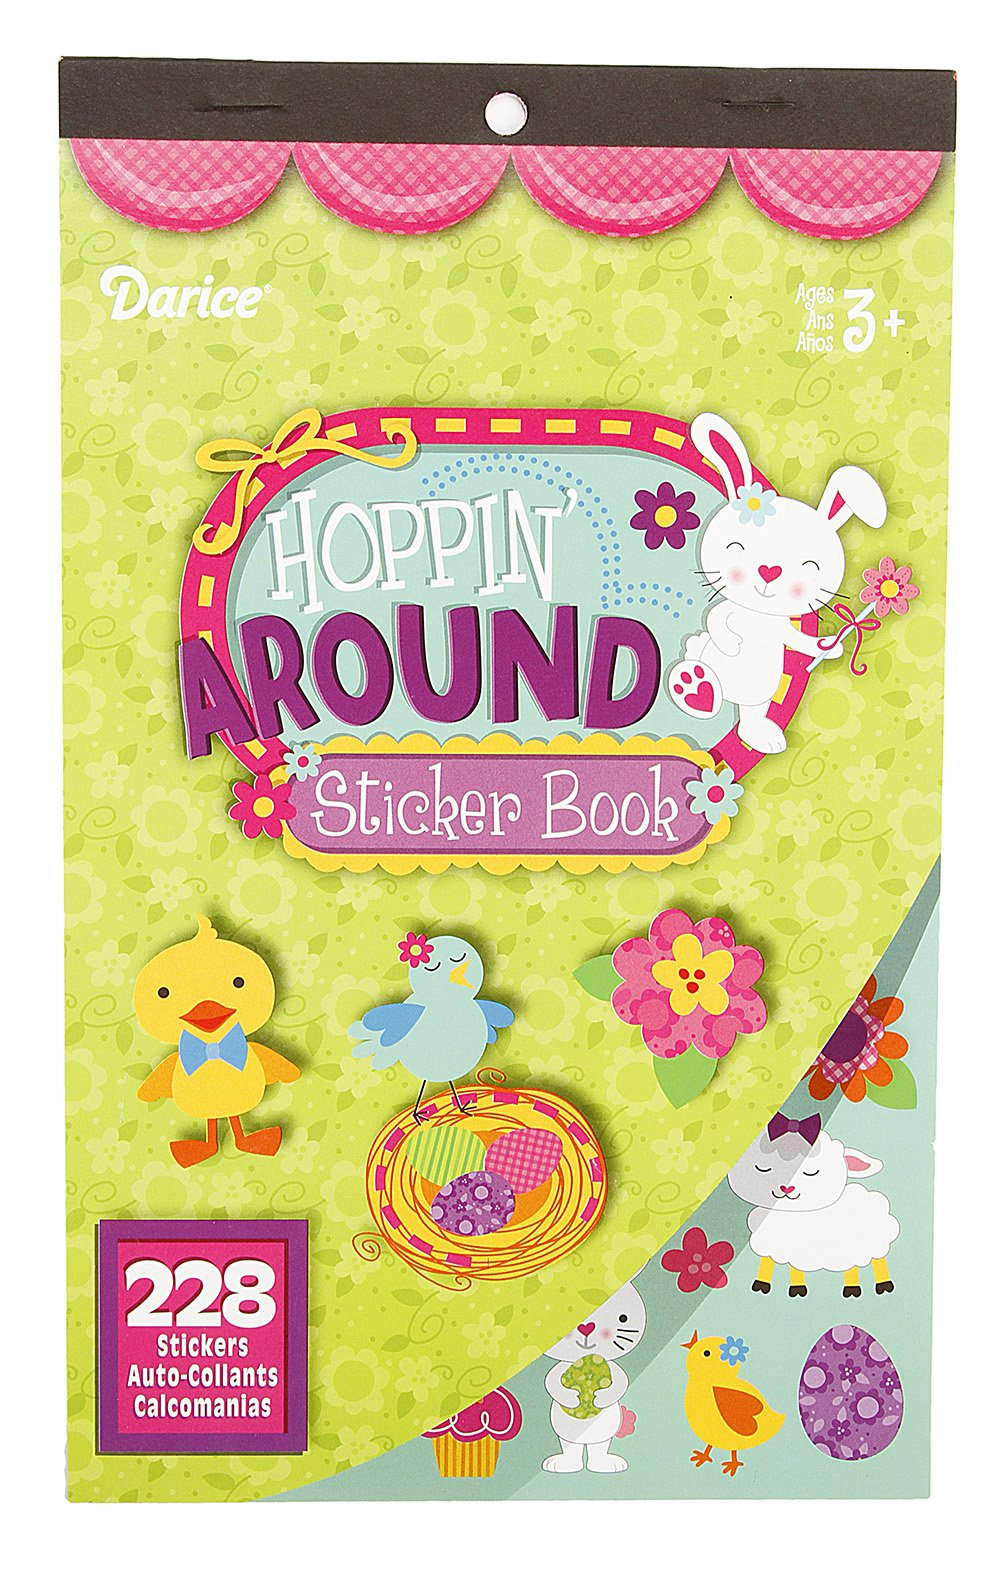 Darice Sticker Book - Hoppin' Around - 228 Stickers